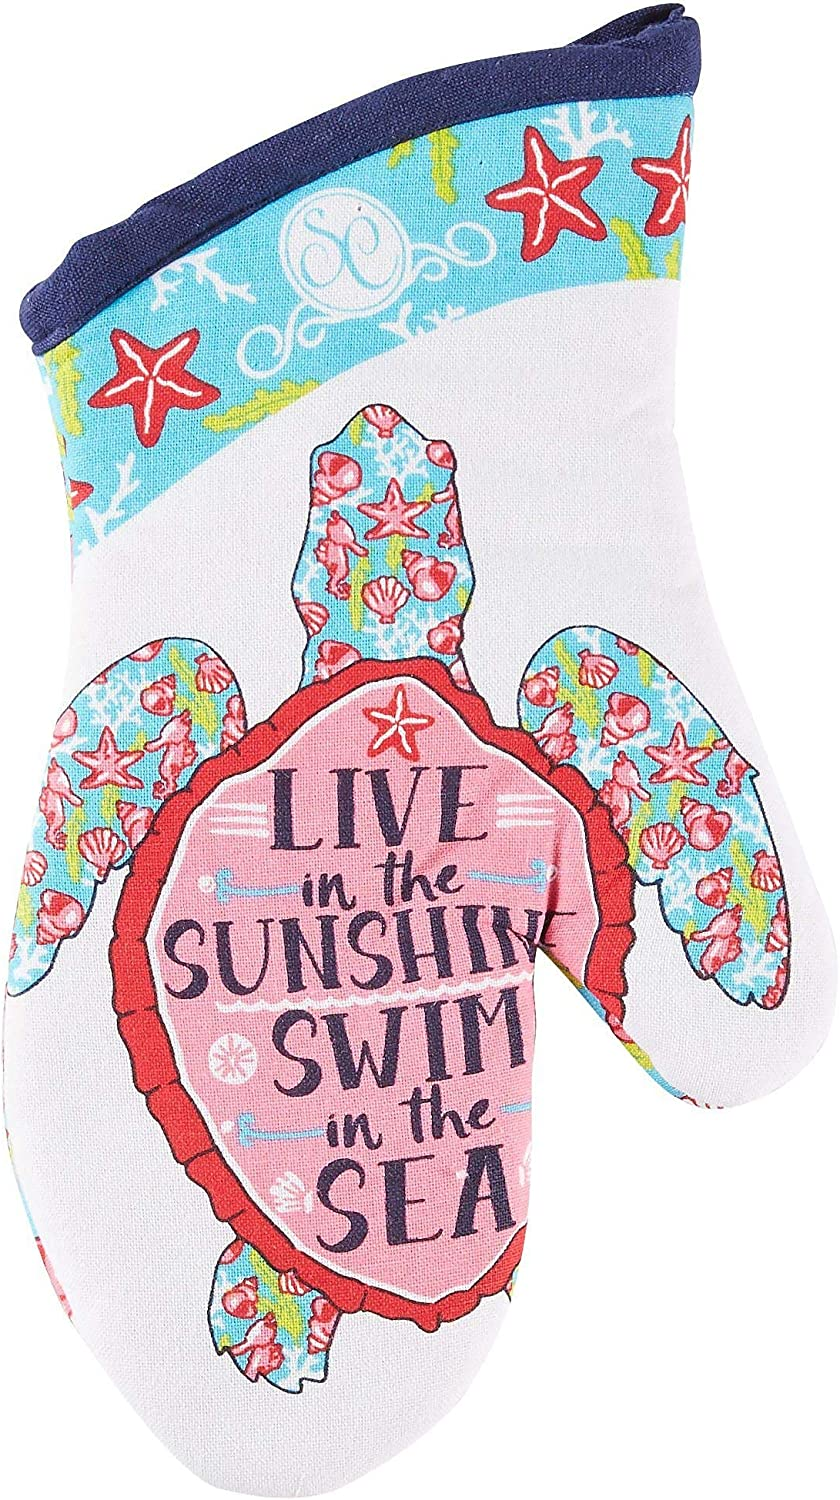 Kay Dee Designs Southern Couture Sea Turtle Oven Mitt One Size White/Blue/Pink